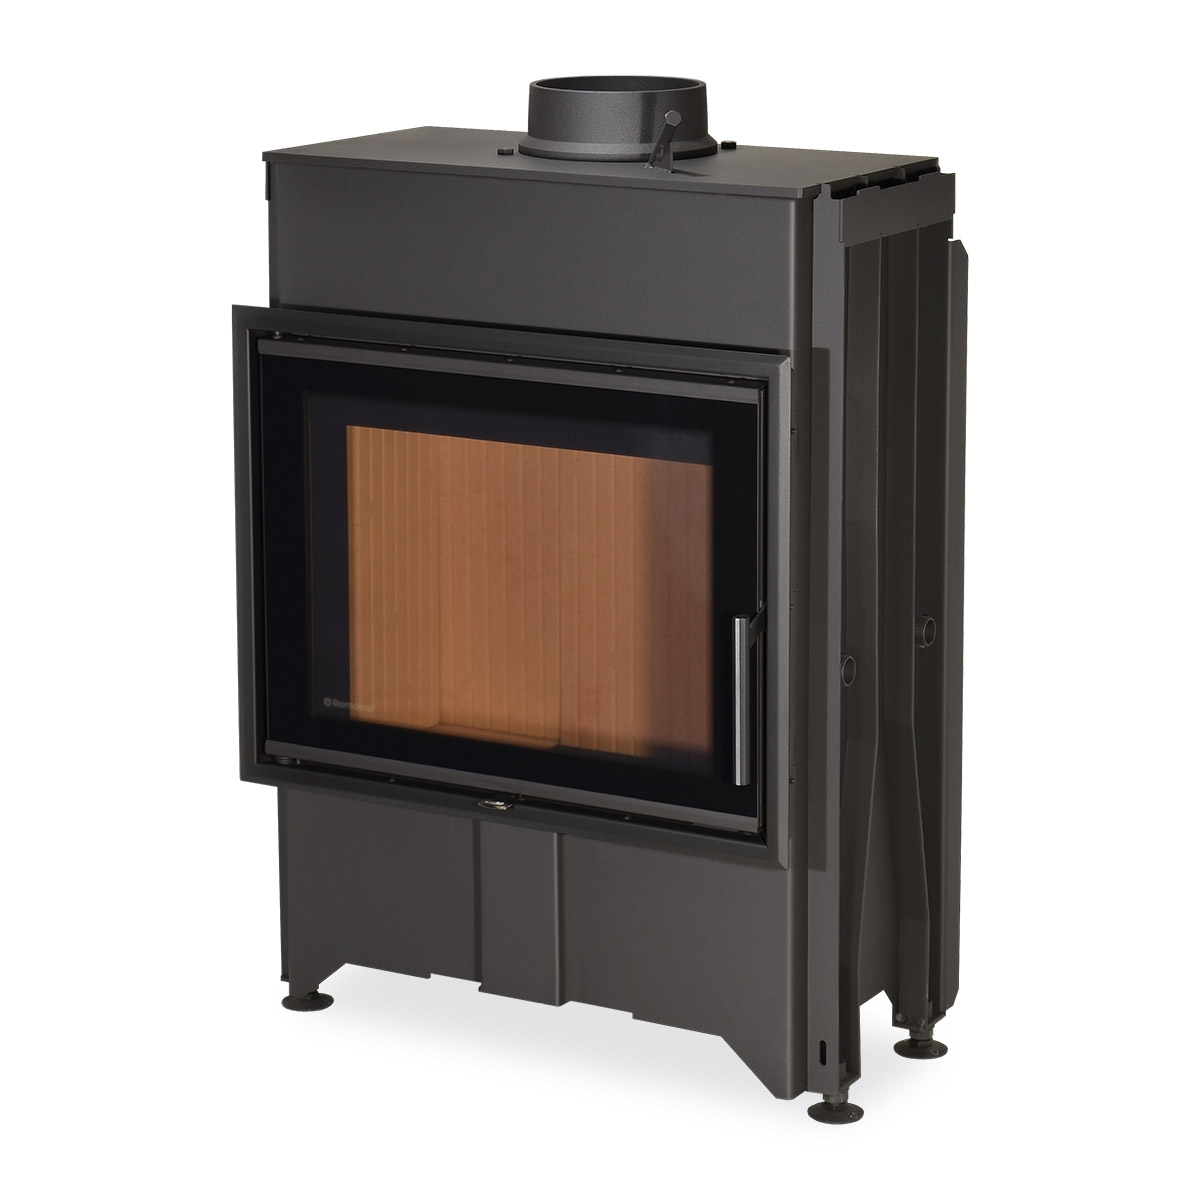 DYNAMIC 2G 66.50.13 - straight fireplace insert with triple glazing